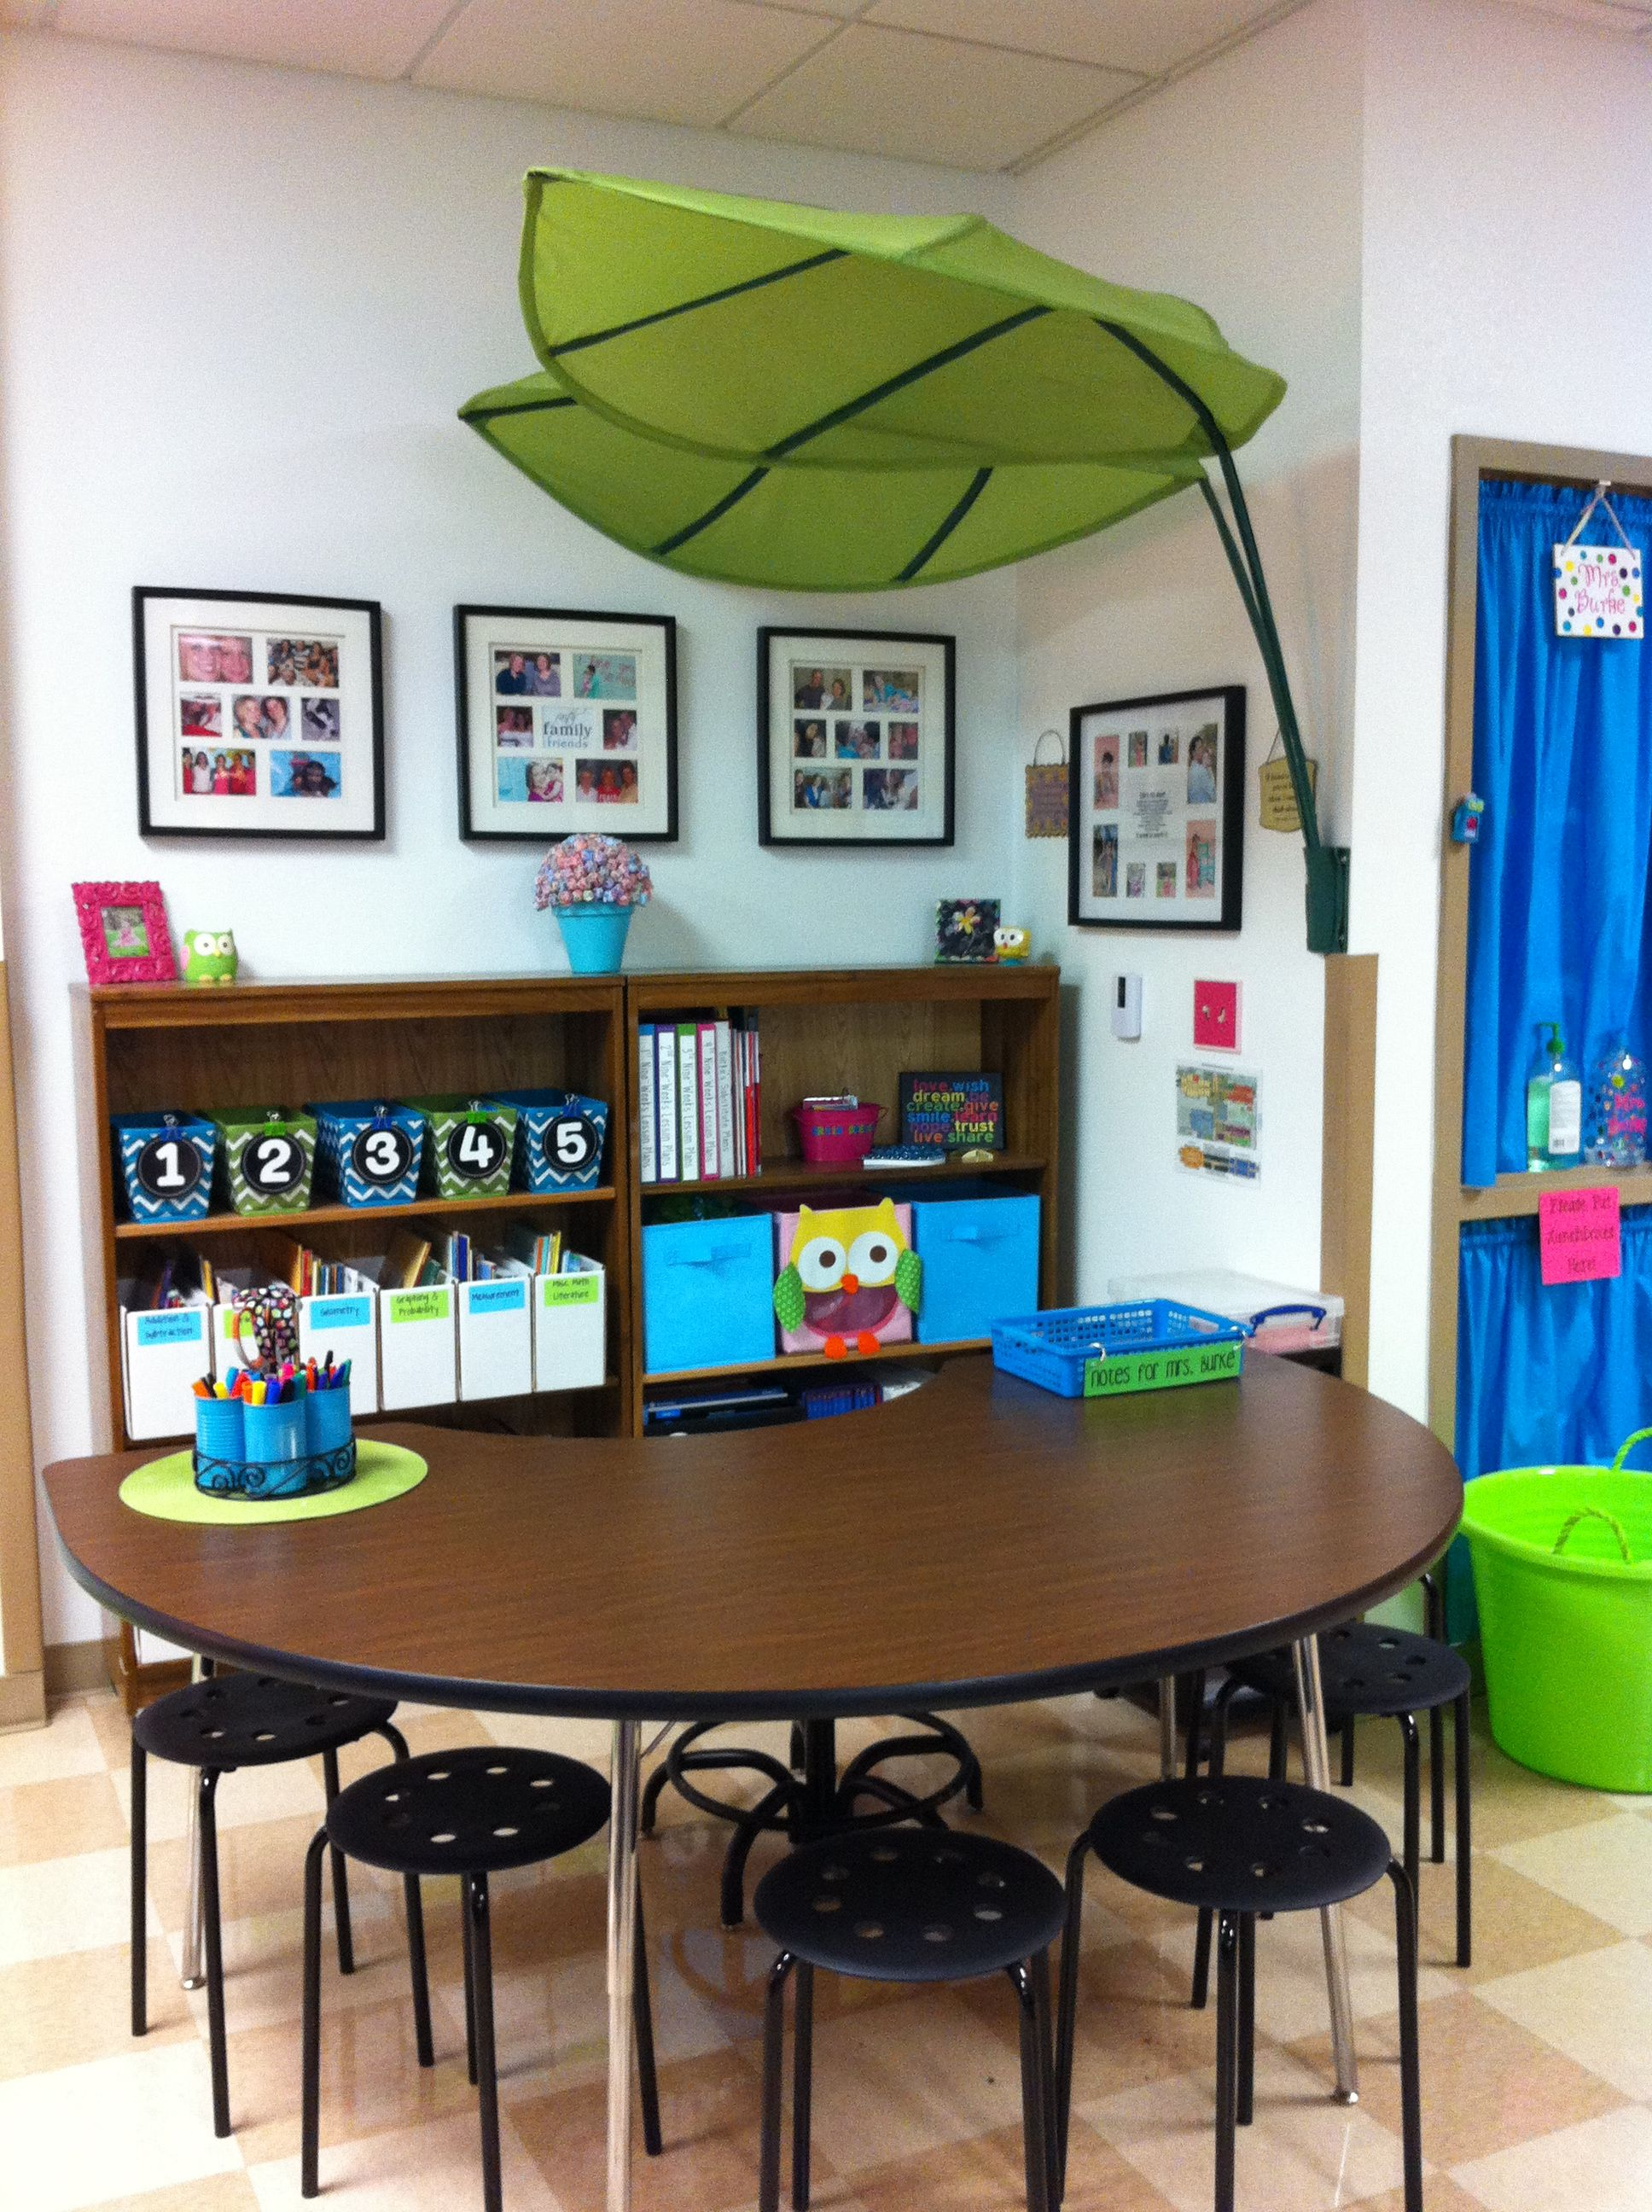 Guided Math Area-I love the leaf tent above the table and the shelves are so organized and tidy. back to school jungle idea or maybe bugs & Guided Math Area-I love the leaf tent above the table and the ...